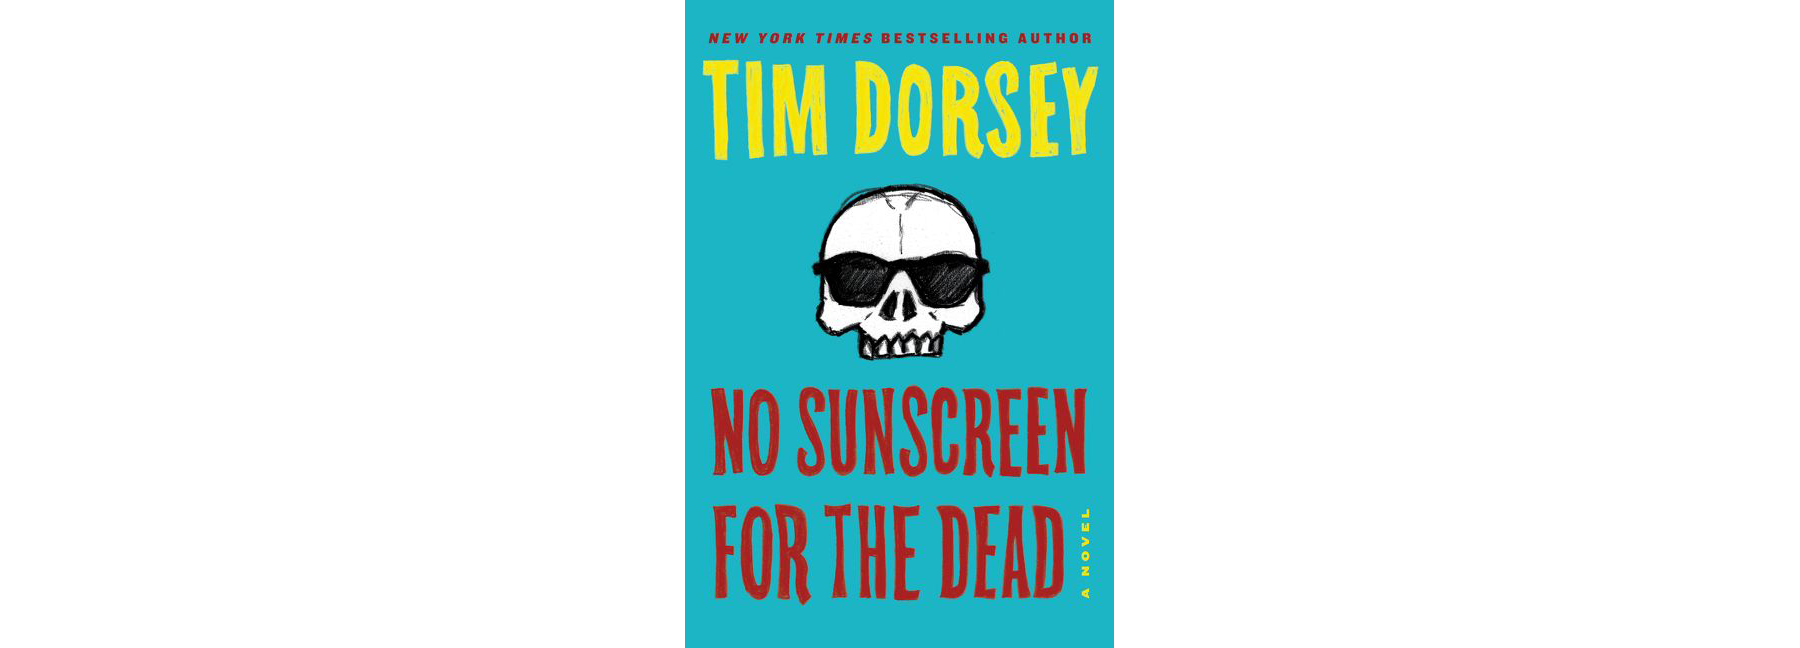 Cover of No Sunscreen for the Dead, by Tim Dorsey